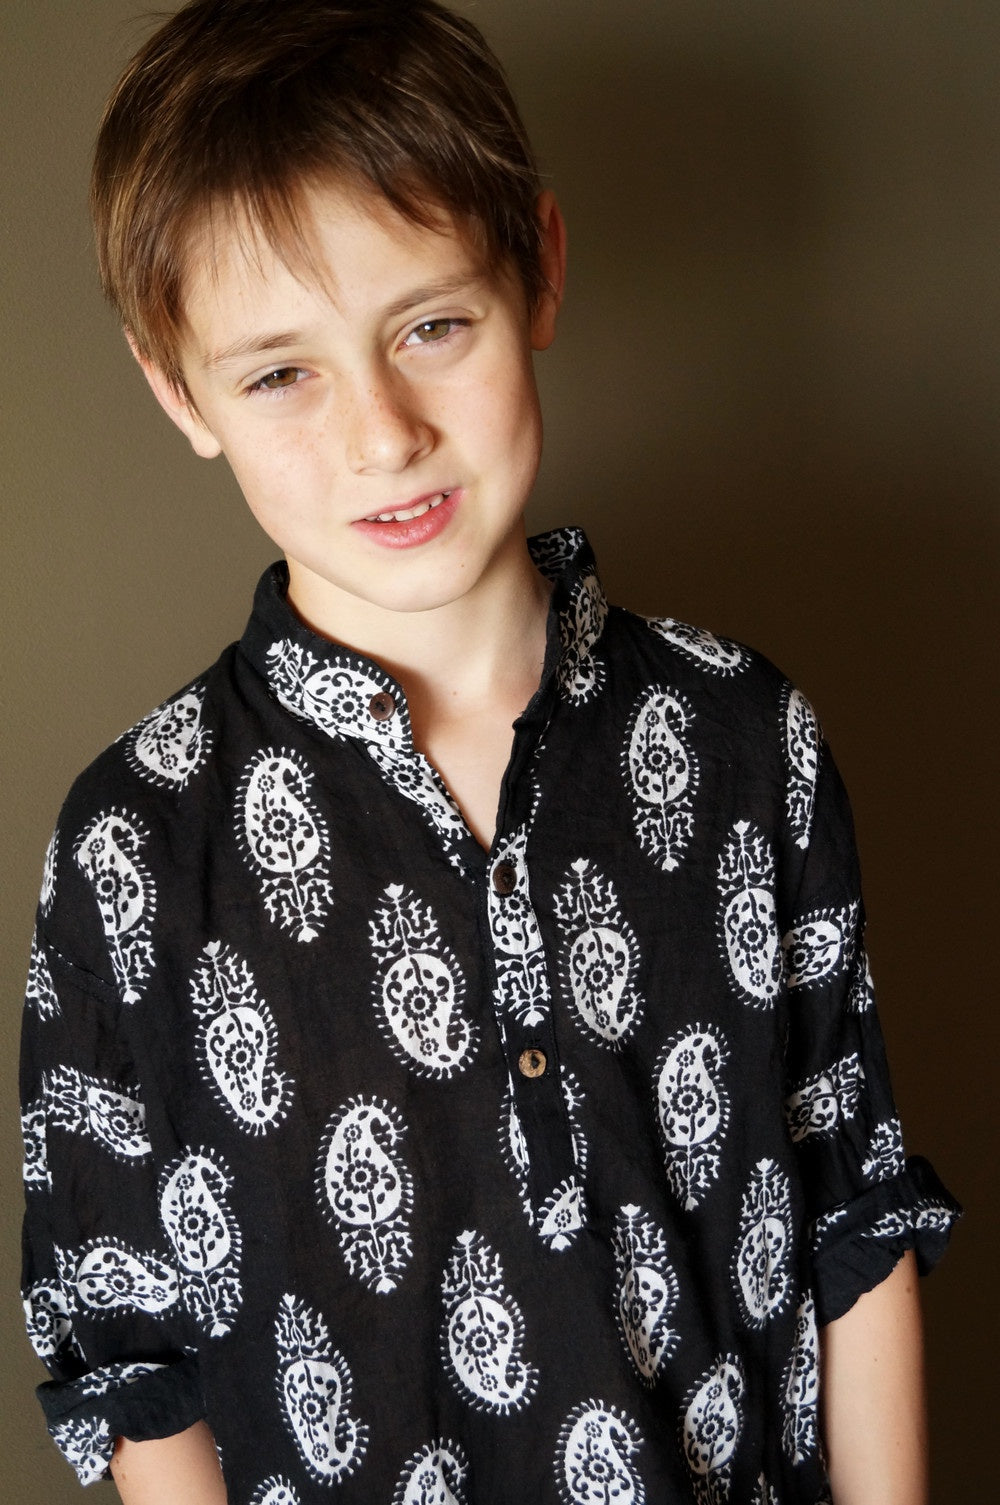 Cotton Paisley Black-White Long Sleeve Boys Shirt